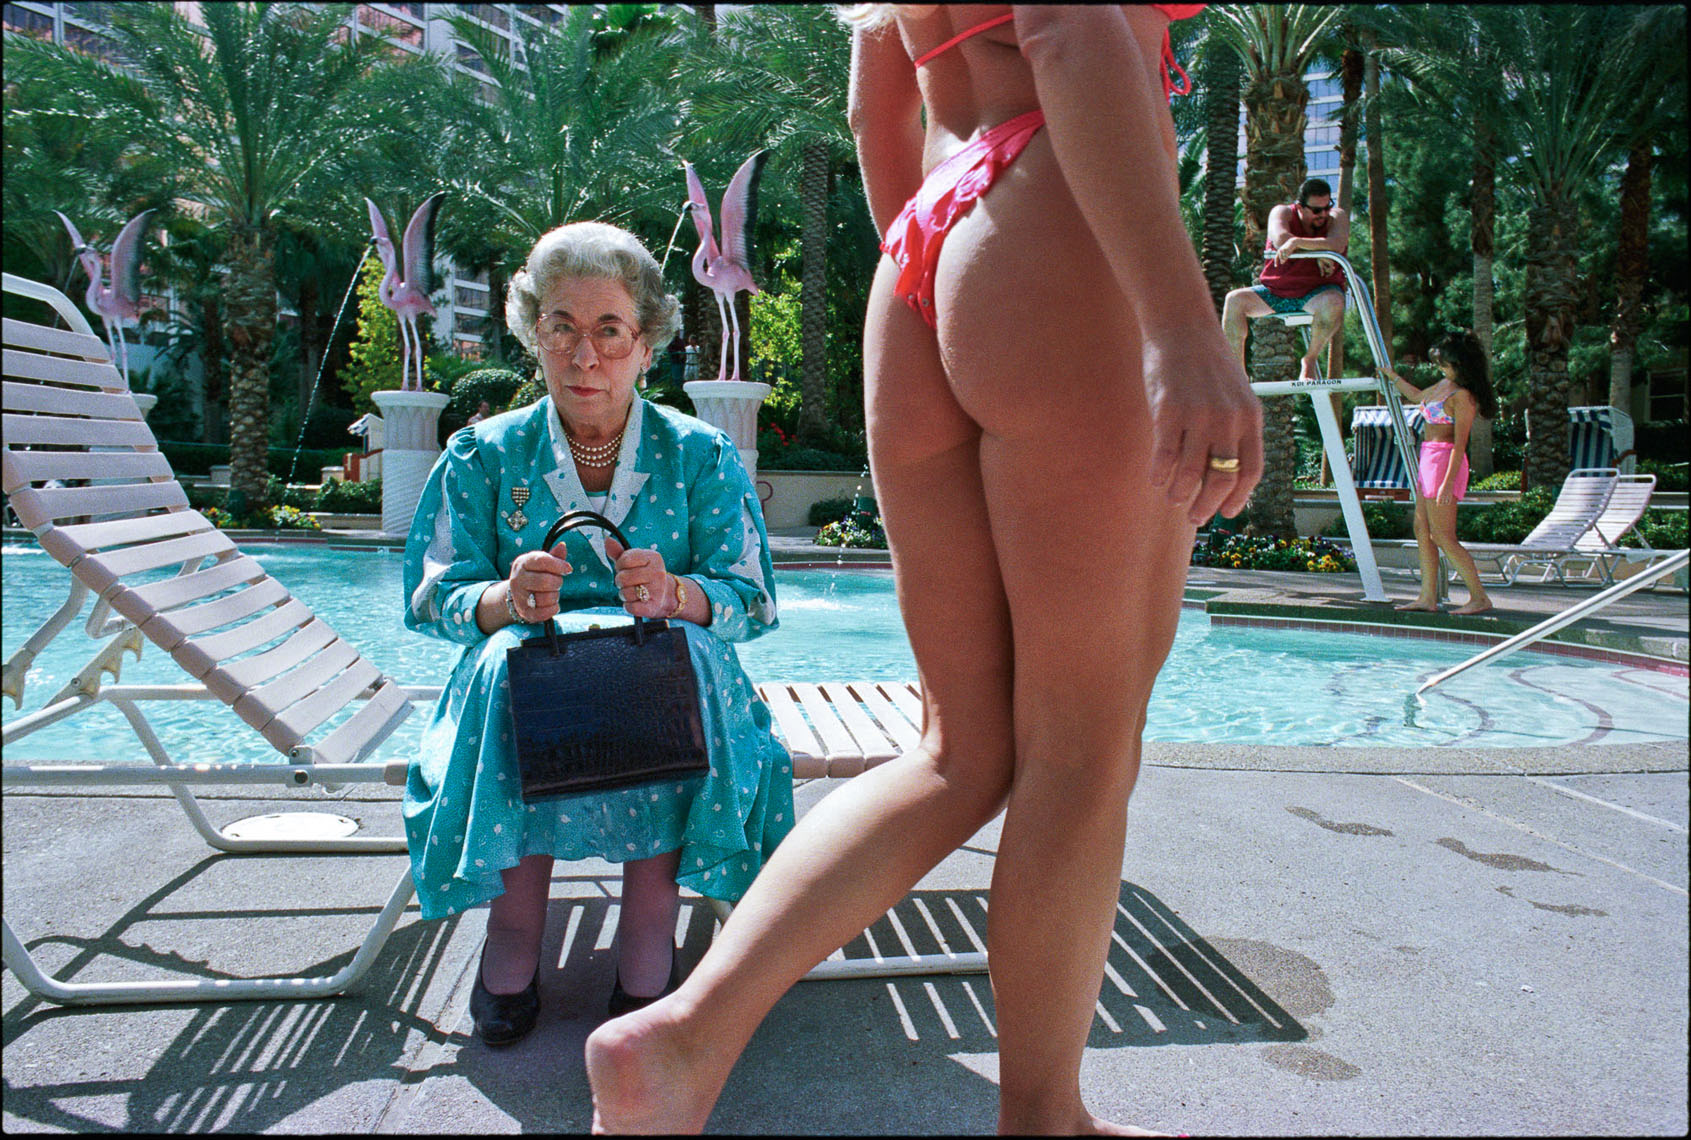 Ad for Virgin Atlantic %22 nonstops to Las Vegas %22 Queen poolside thong,  agency- R & R Partners